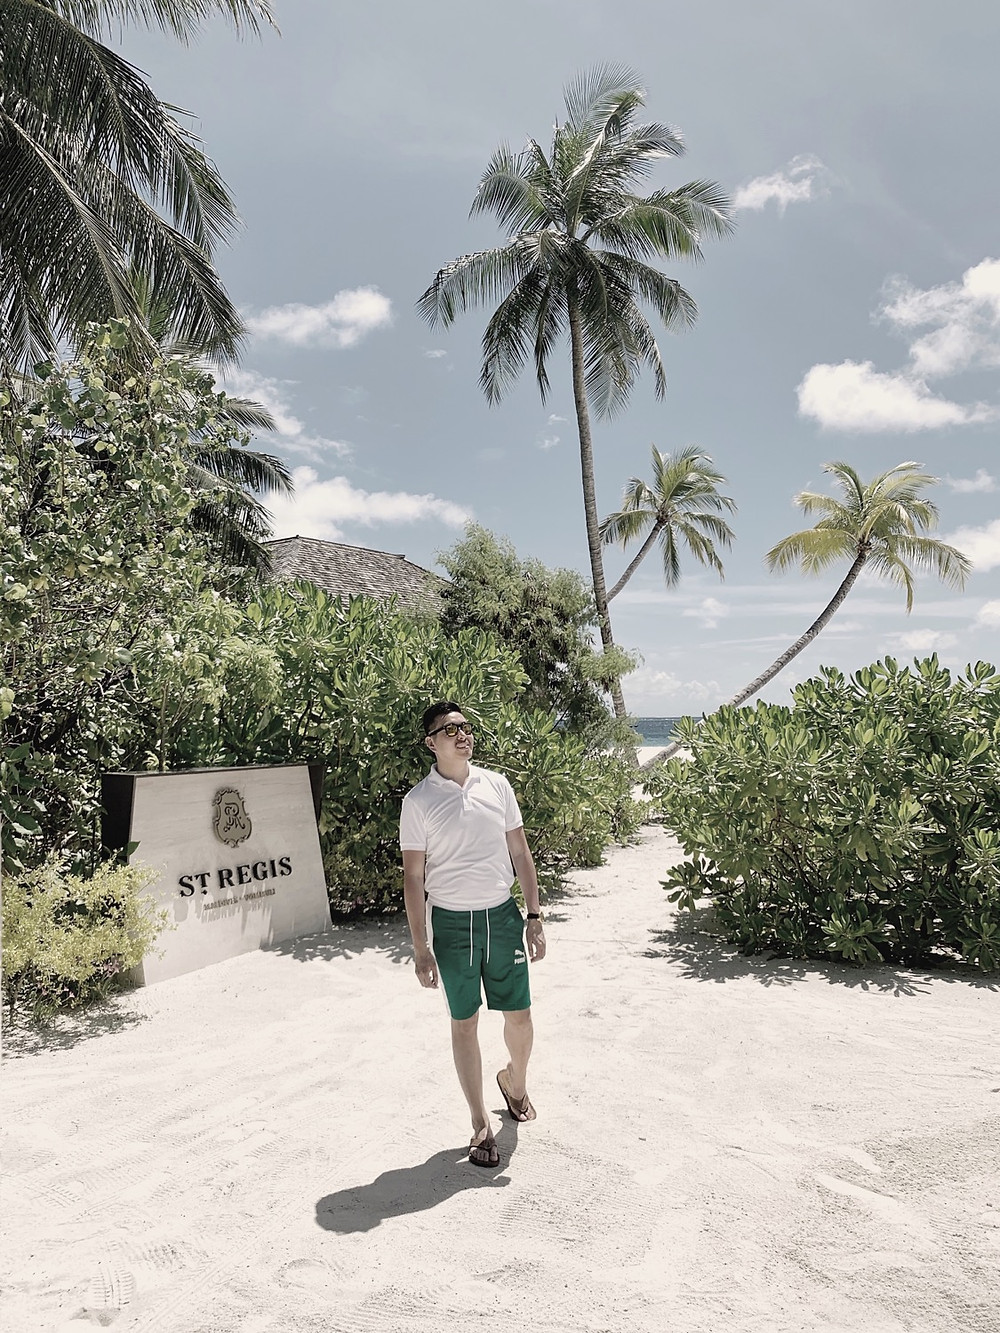 Maldives in May: St. Regis Welcome Sign